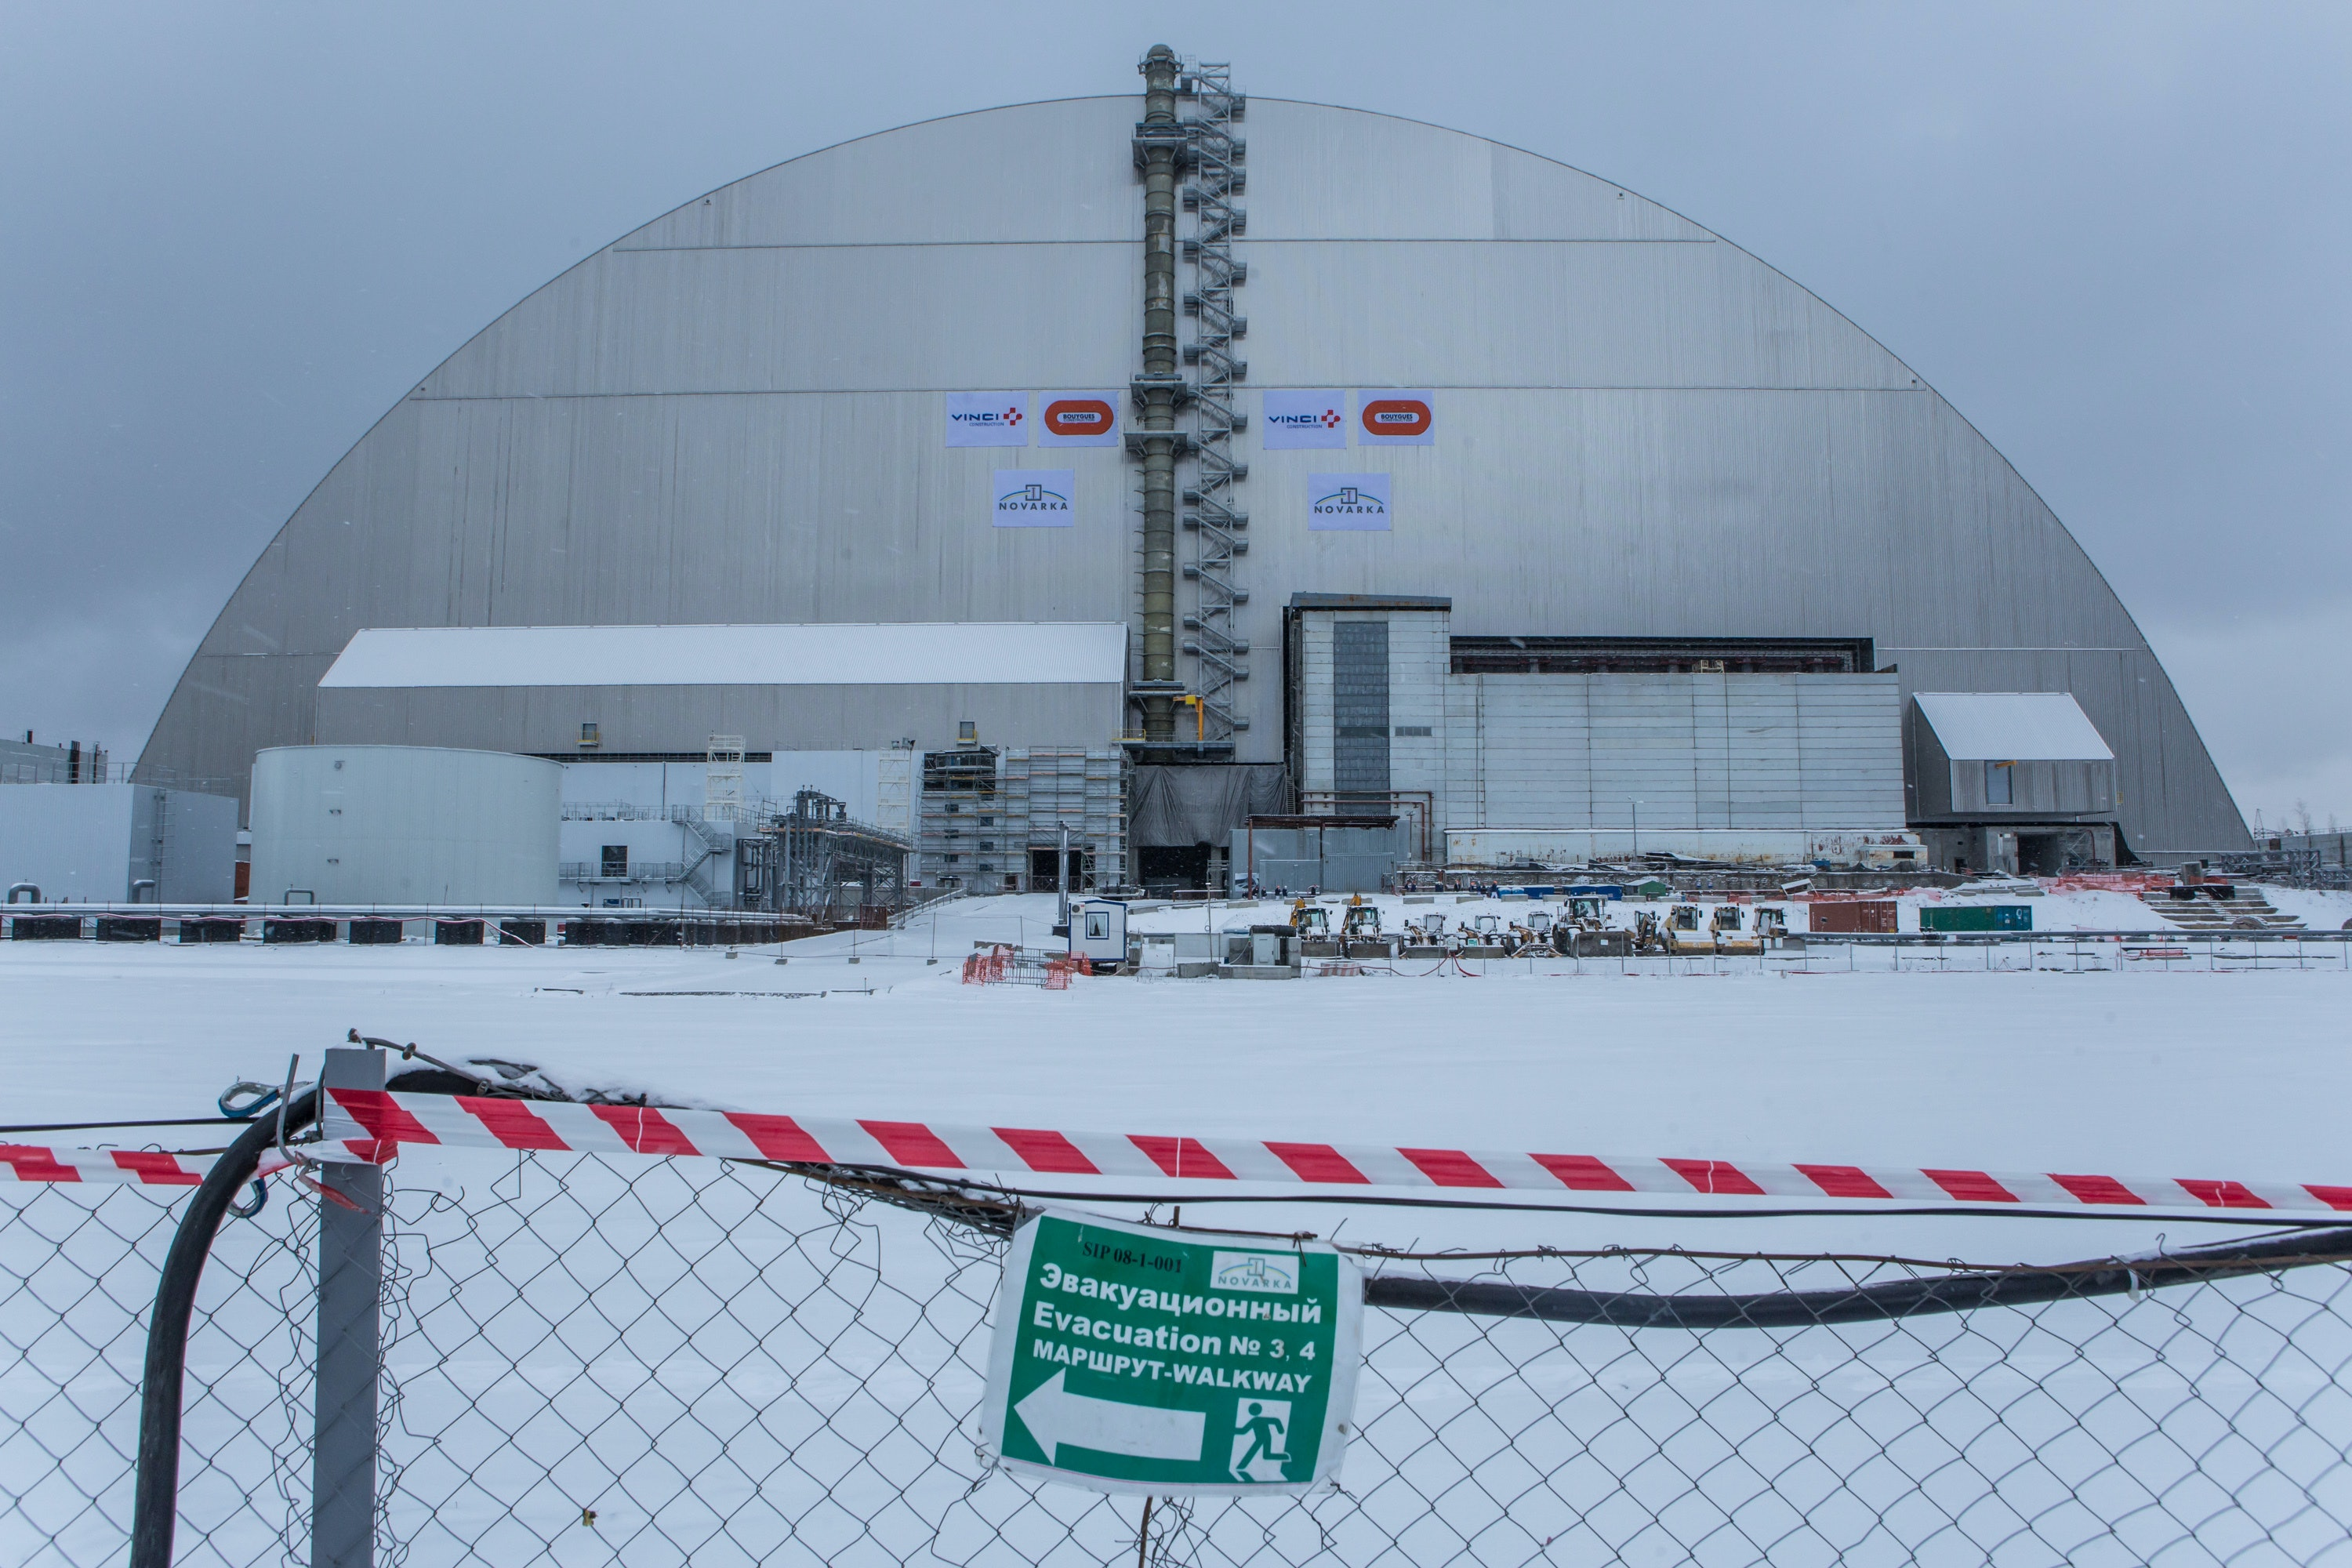 CHERNOBYL, UKRAINE - NOVEMBER 29: The New Safe Confinement sarcophagus covers the destroyed reactor number four at the Chernobyl nuclear power station on November 29, 2016 in Chernobyl, Ukraine. On April 26, 1986 workers at the Chernobyl nuclear power plant inadvertantly caused a meltdown in reactor number four, causing it to explode and send a toxic cocktail of radioactive fallout into the atmosphere in the world's worst civilian nuclear incident. (Photo by Brendan Hoffman/Getty Images)